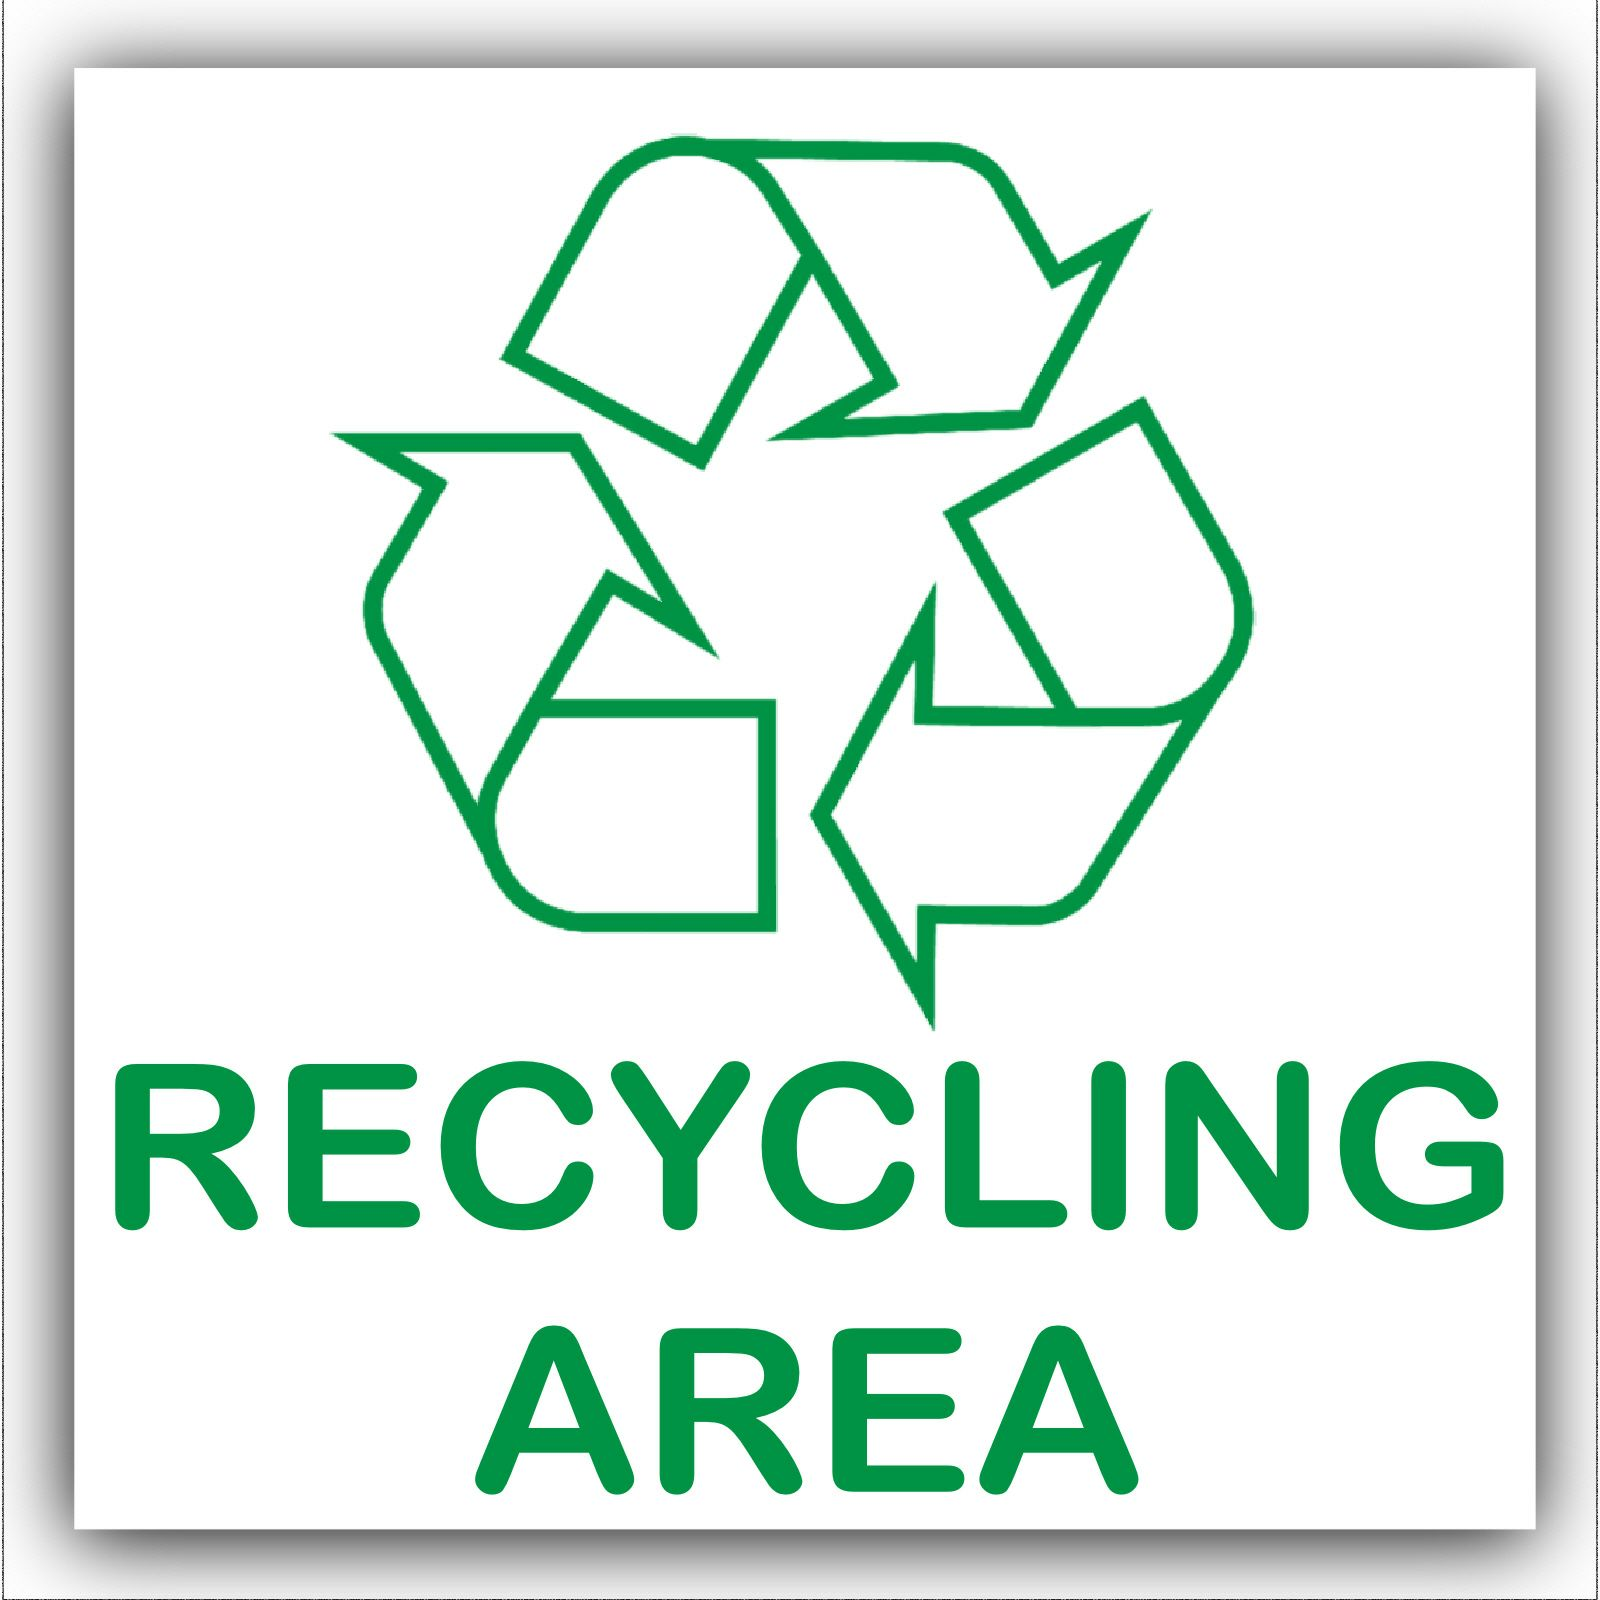 1 X Recycling Area Adhesive Sticker Recycle Logo Sign